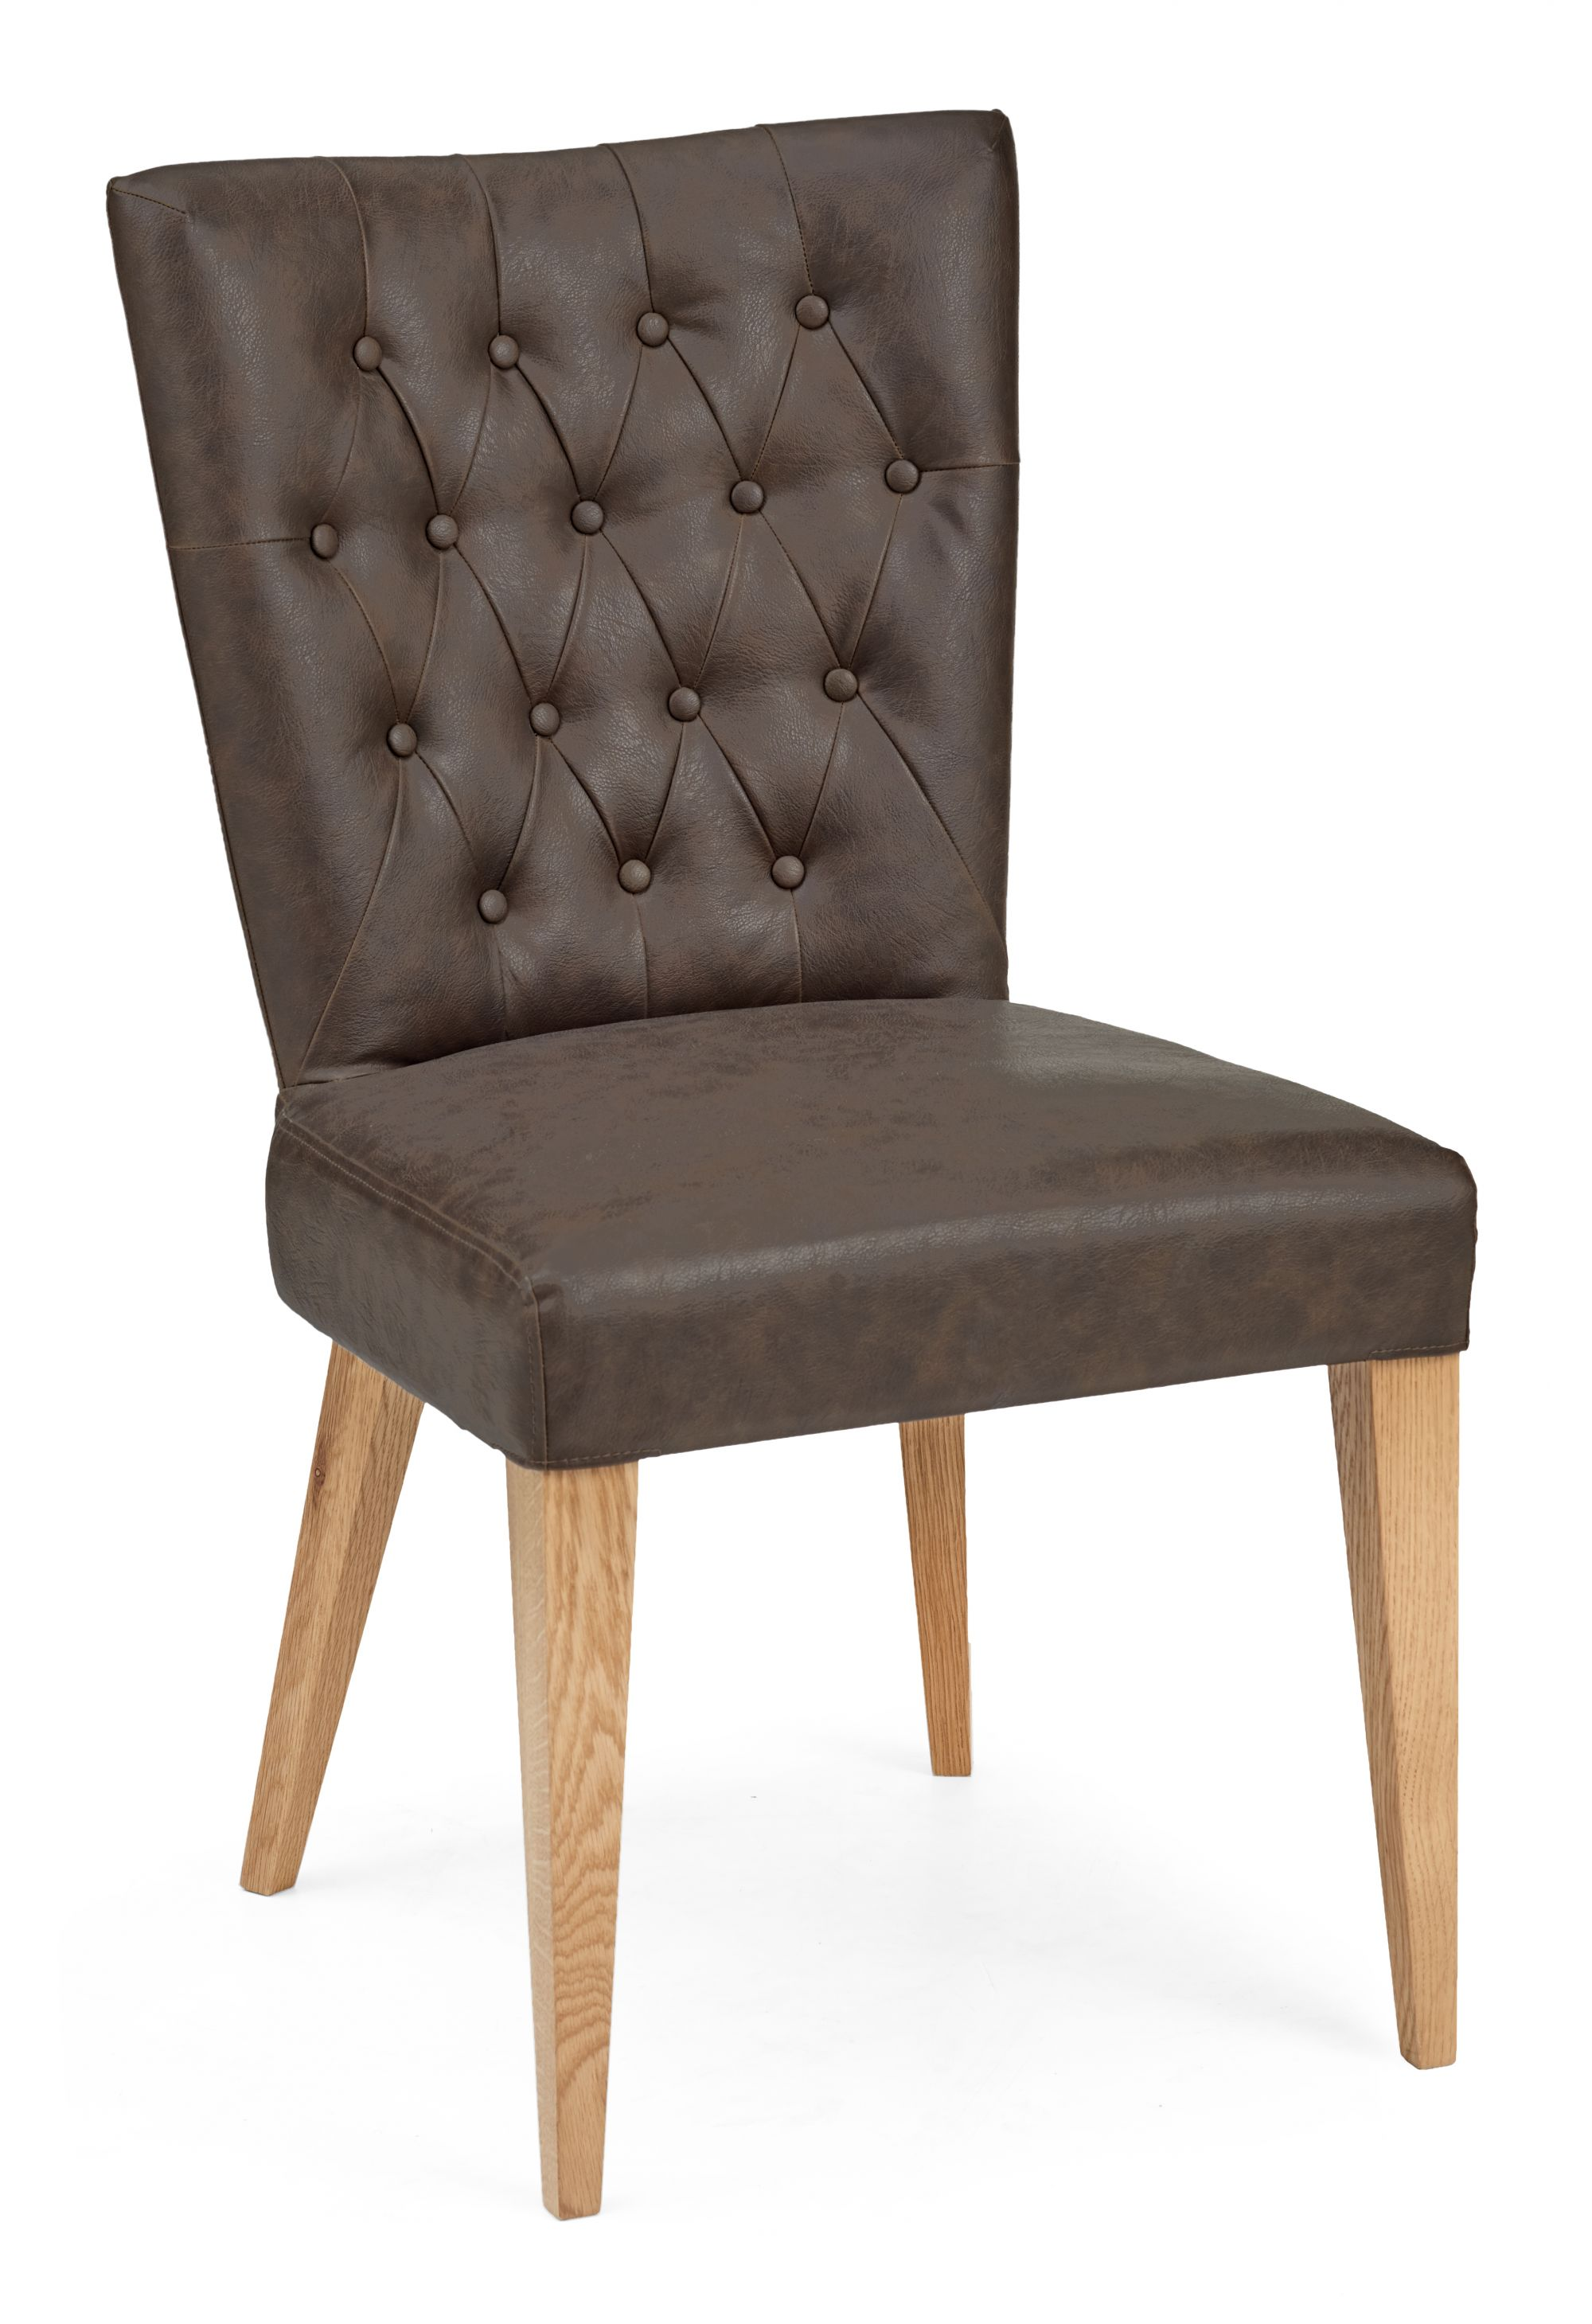 https://www.firstfurniture.co.uk/pub/media/catalog/product/4/1/4101-09UB-DBR-C1.jpg